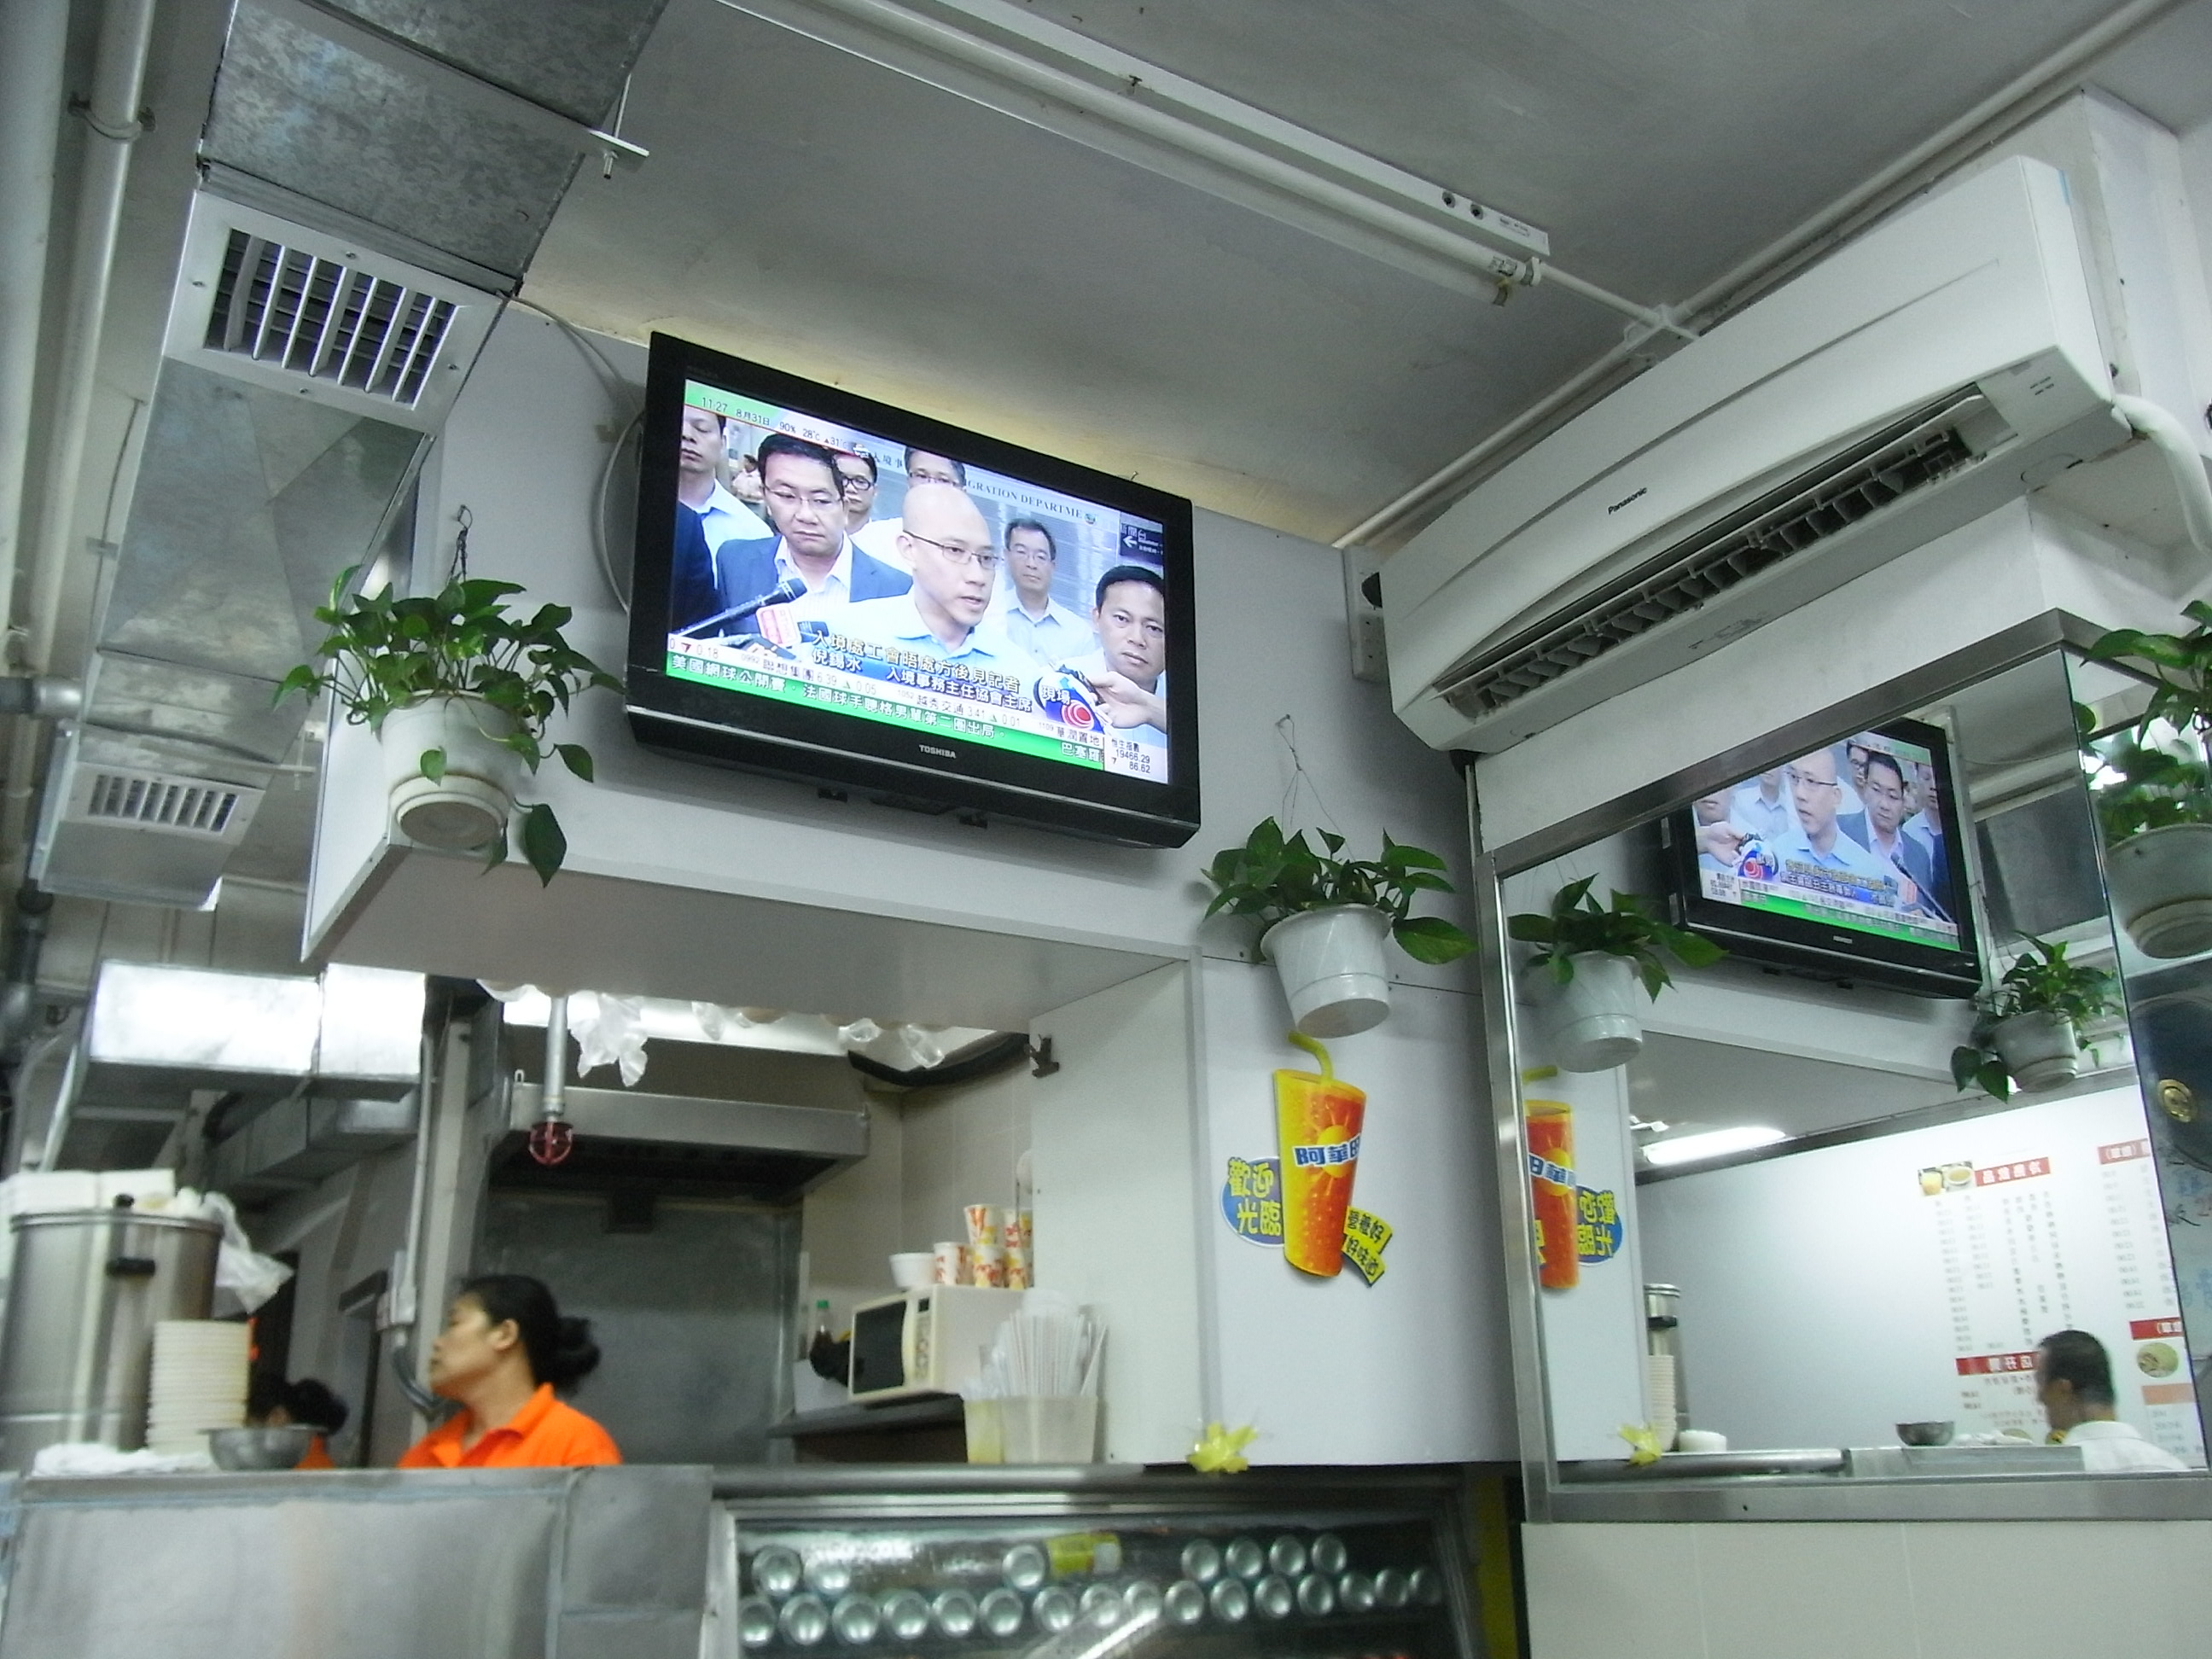 file:hk sheung wan jervois street fast food restaurant interior tv